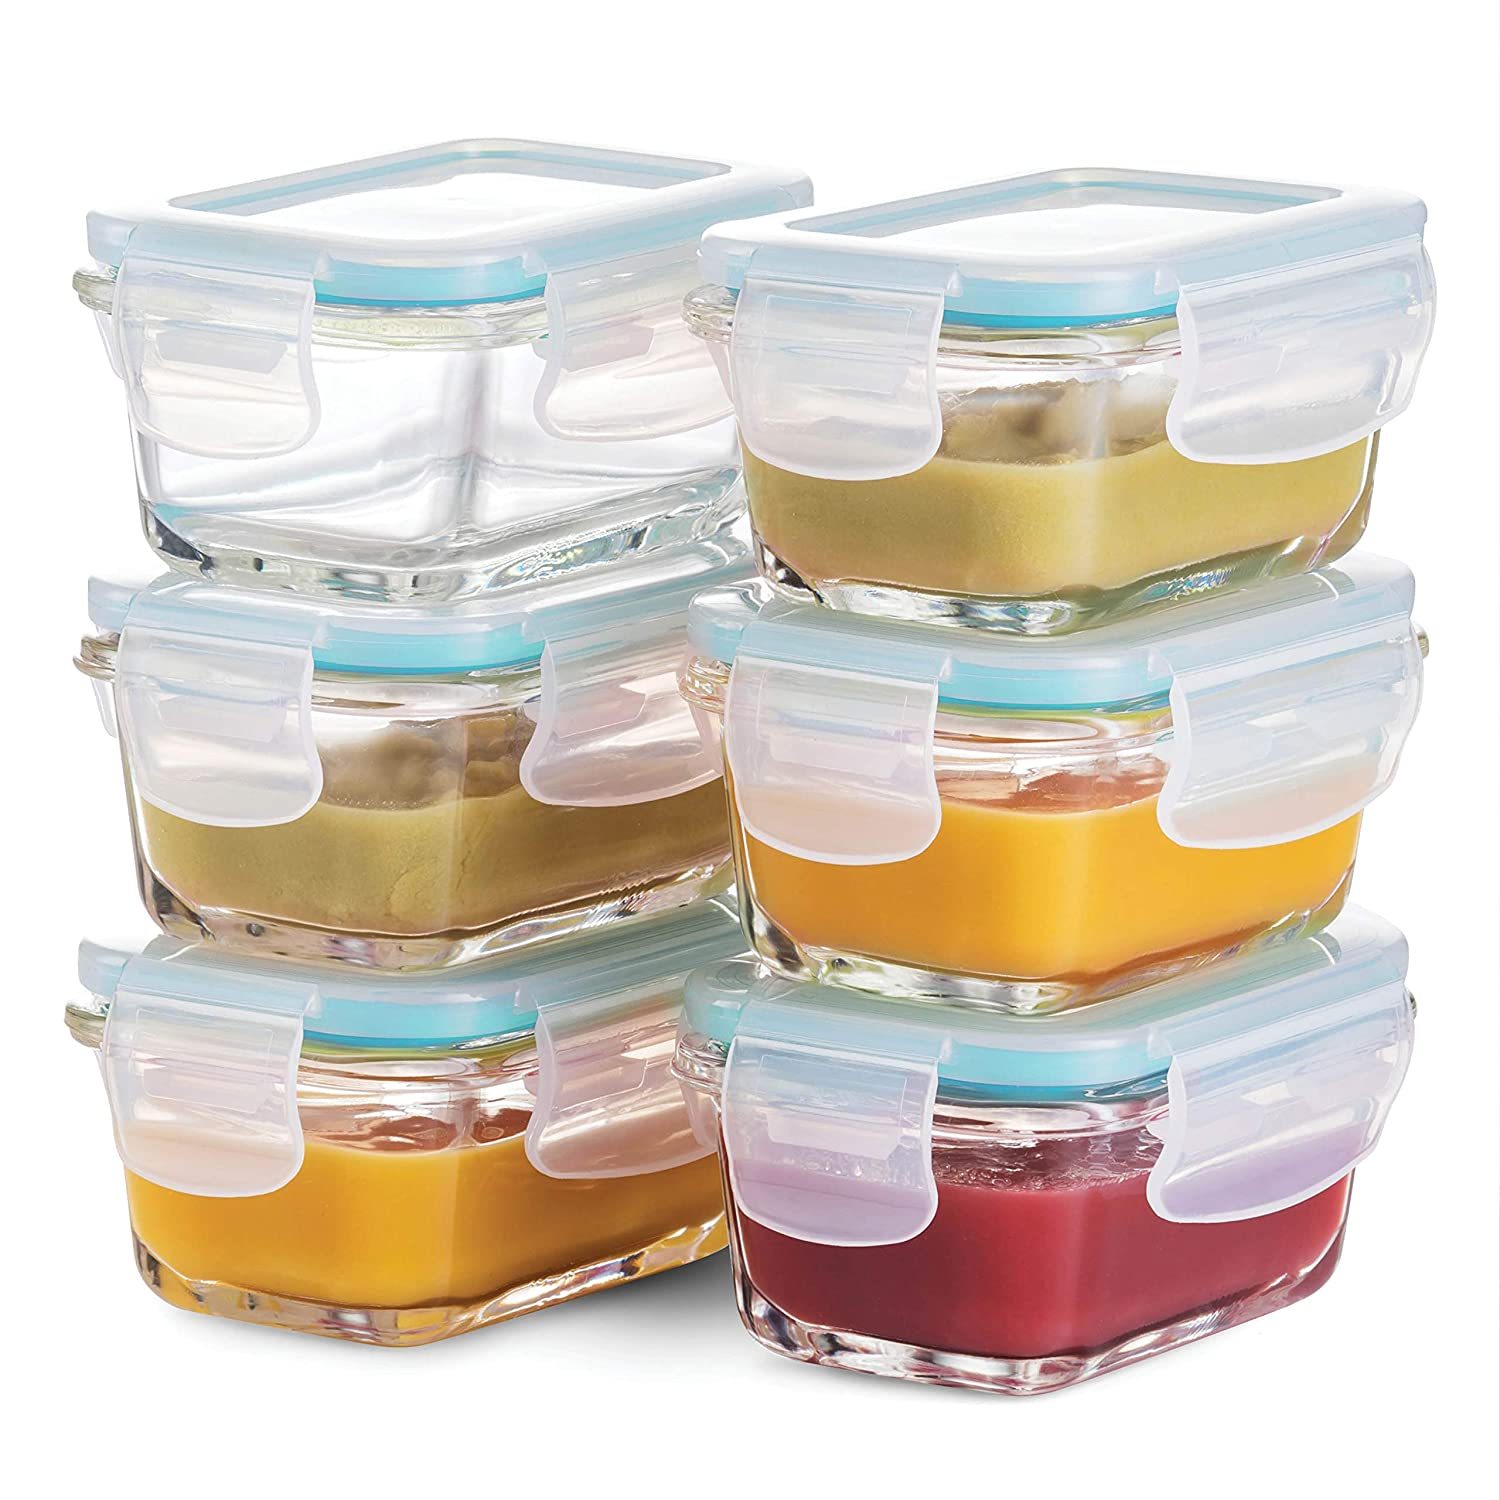 Superior Glass Baby Food Storage Containers - Set of 6-4 Oz Containers with Airtight BPA-Free Locking Lids - Baby Food containers - Microwave & Dishwasher Safe - Small Containers for Snacks Dips etc